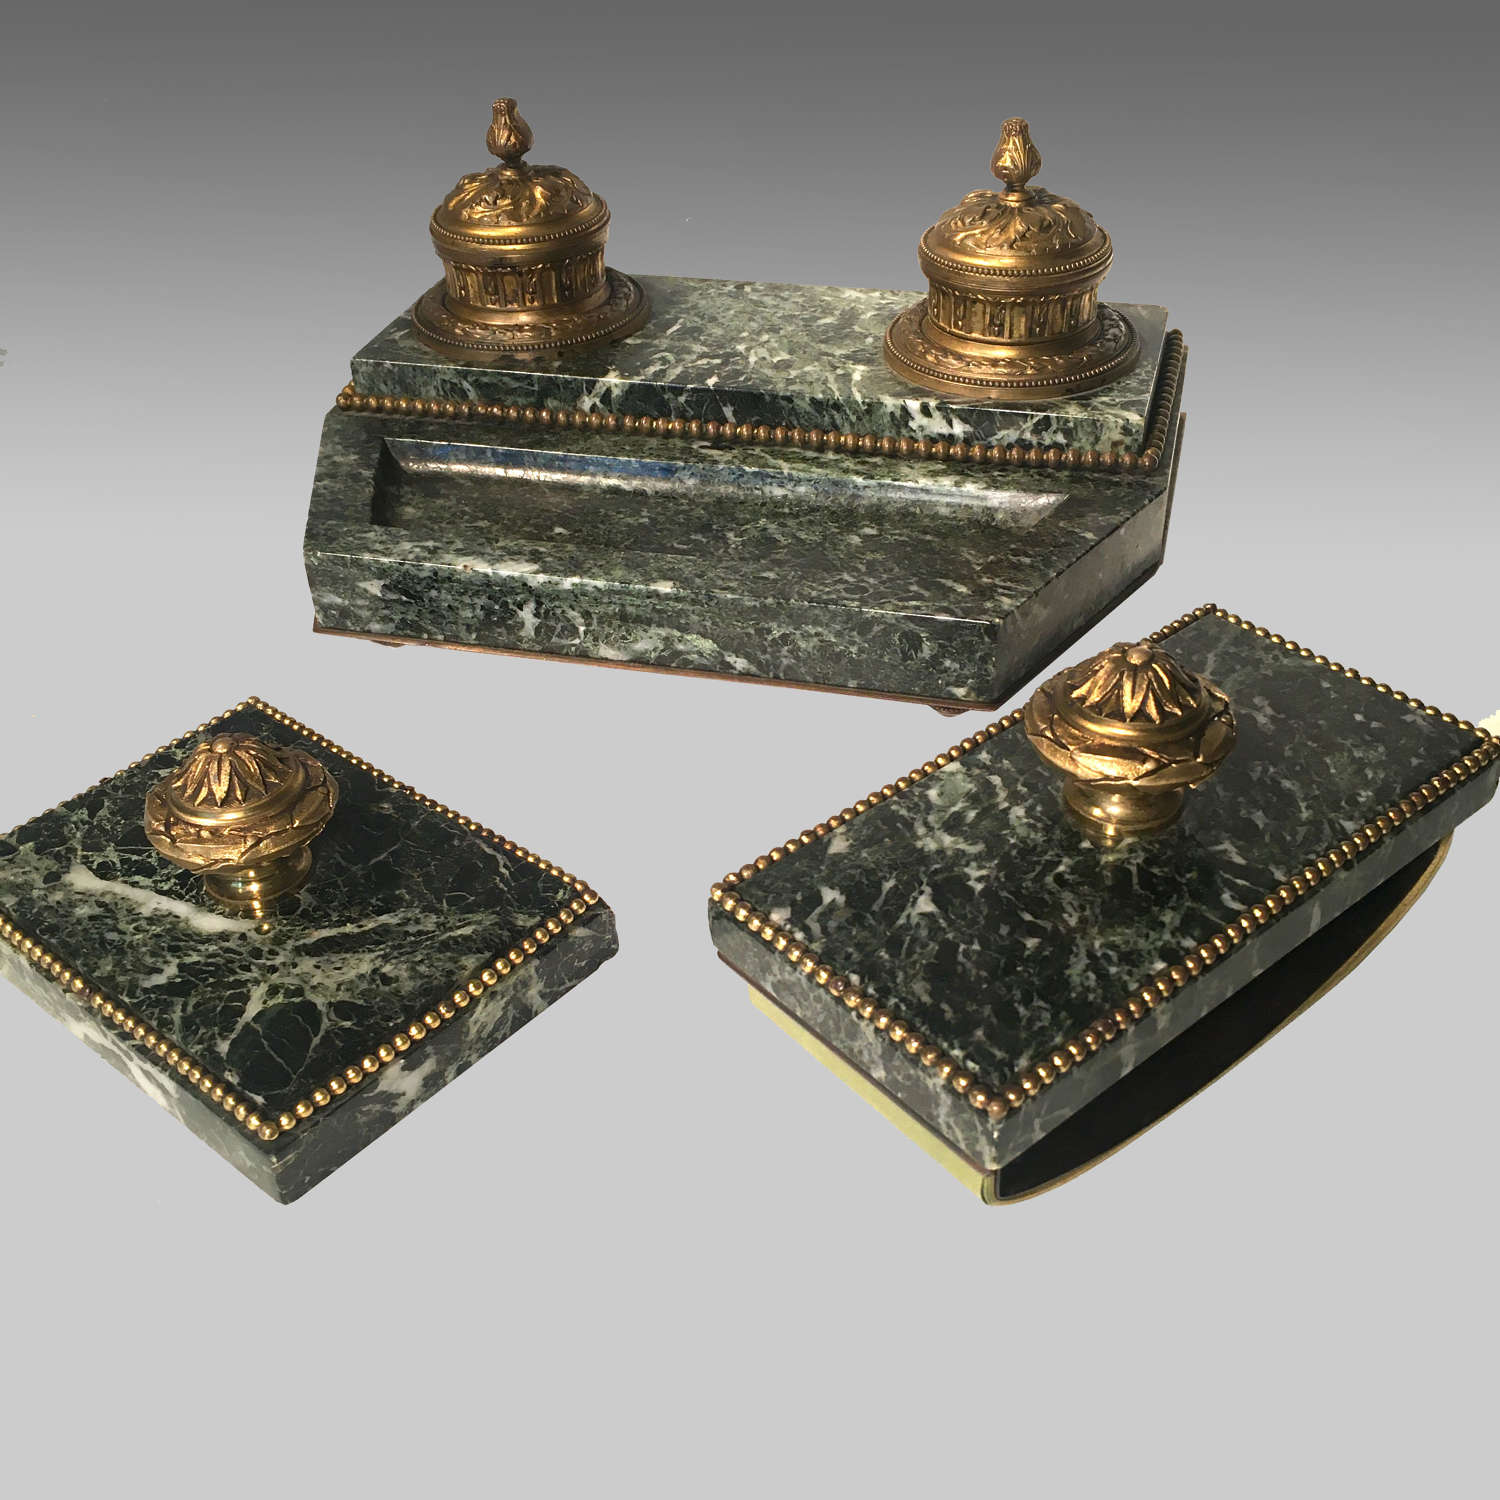 Vert antique marble and ormolu mounted desk set